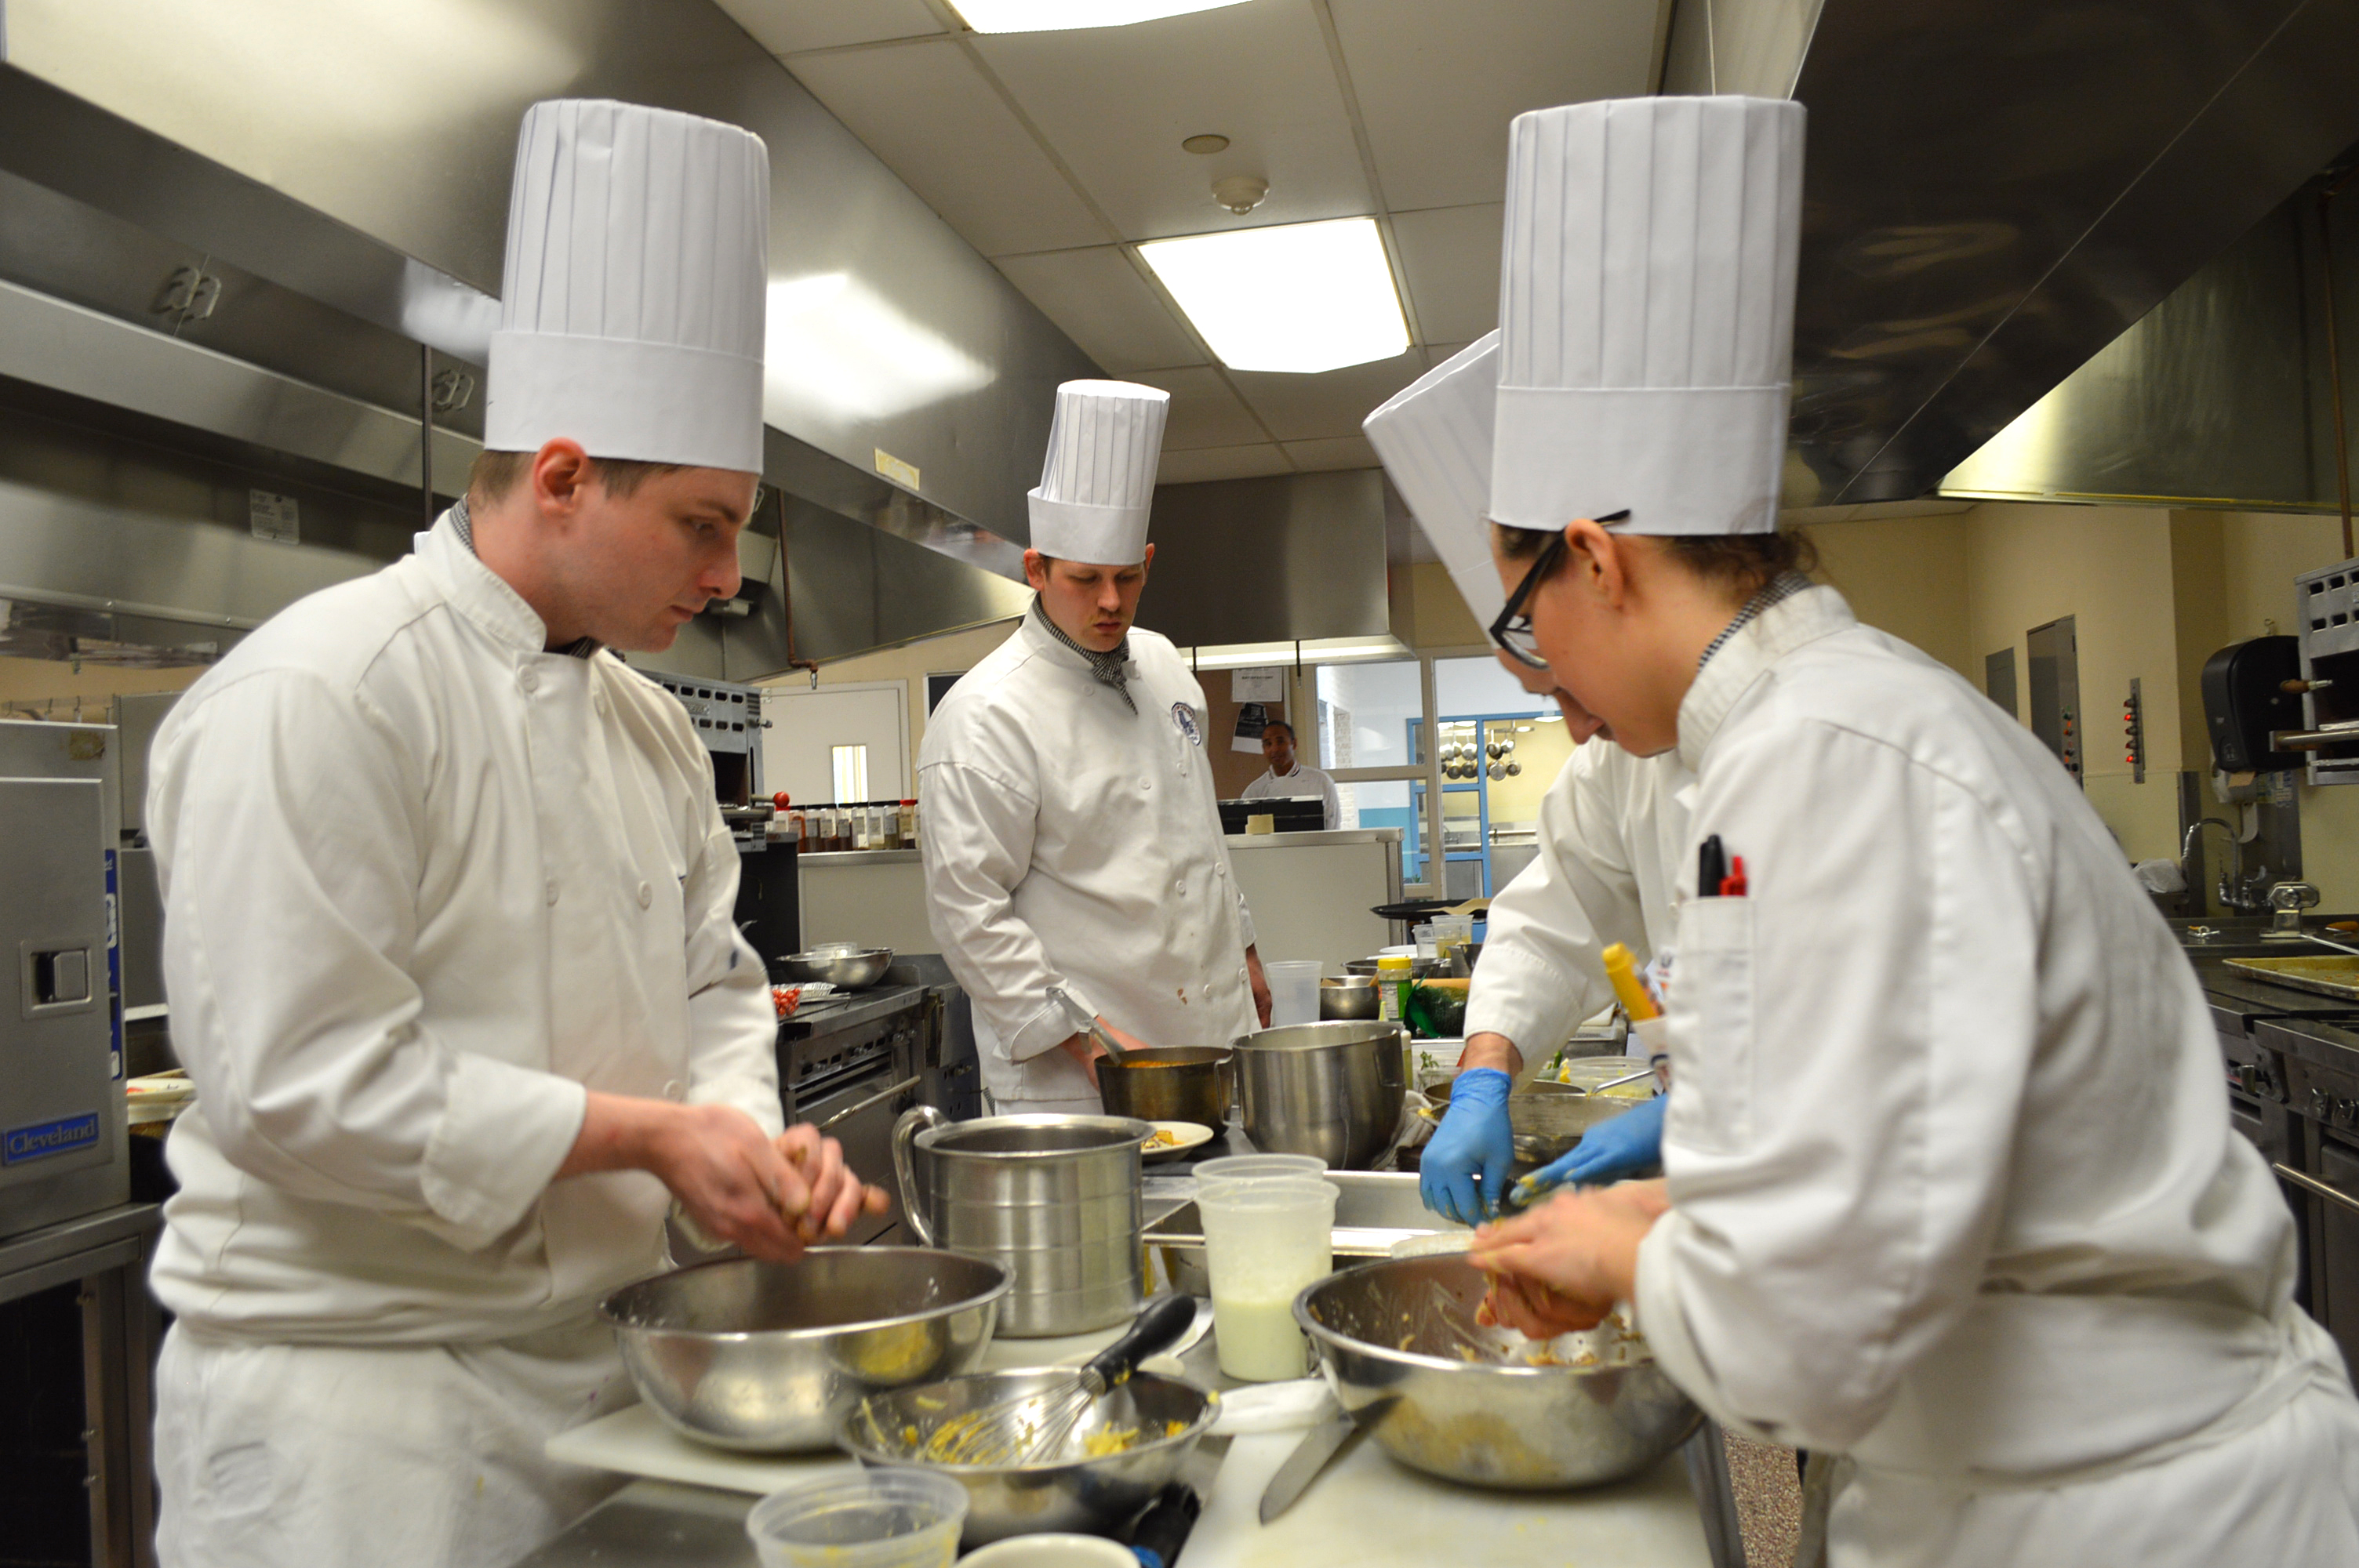 Culinary students in the kitchen preparing food